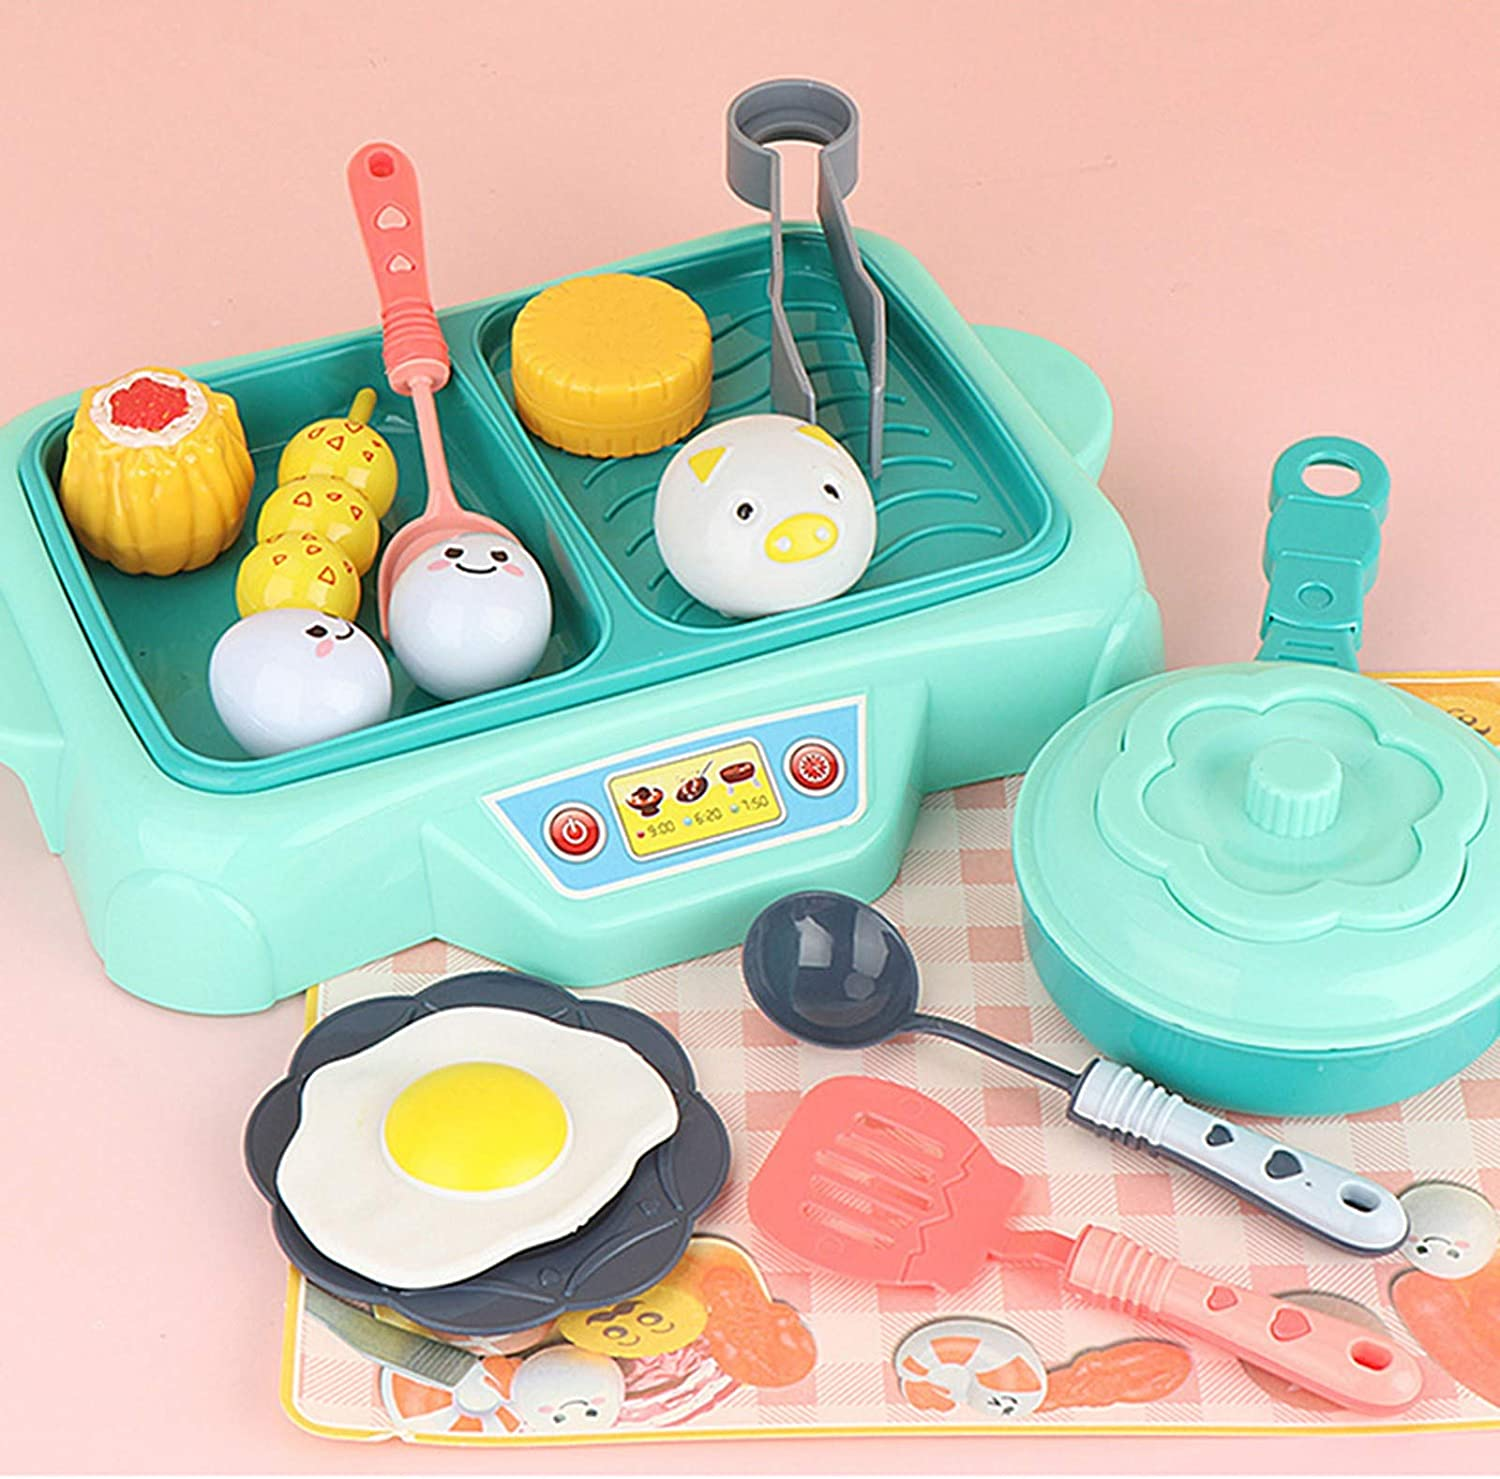 Toy Pots and Save money Pans for Pretend Chef Kitchen Clearance SALE! Limited time! Play Kids